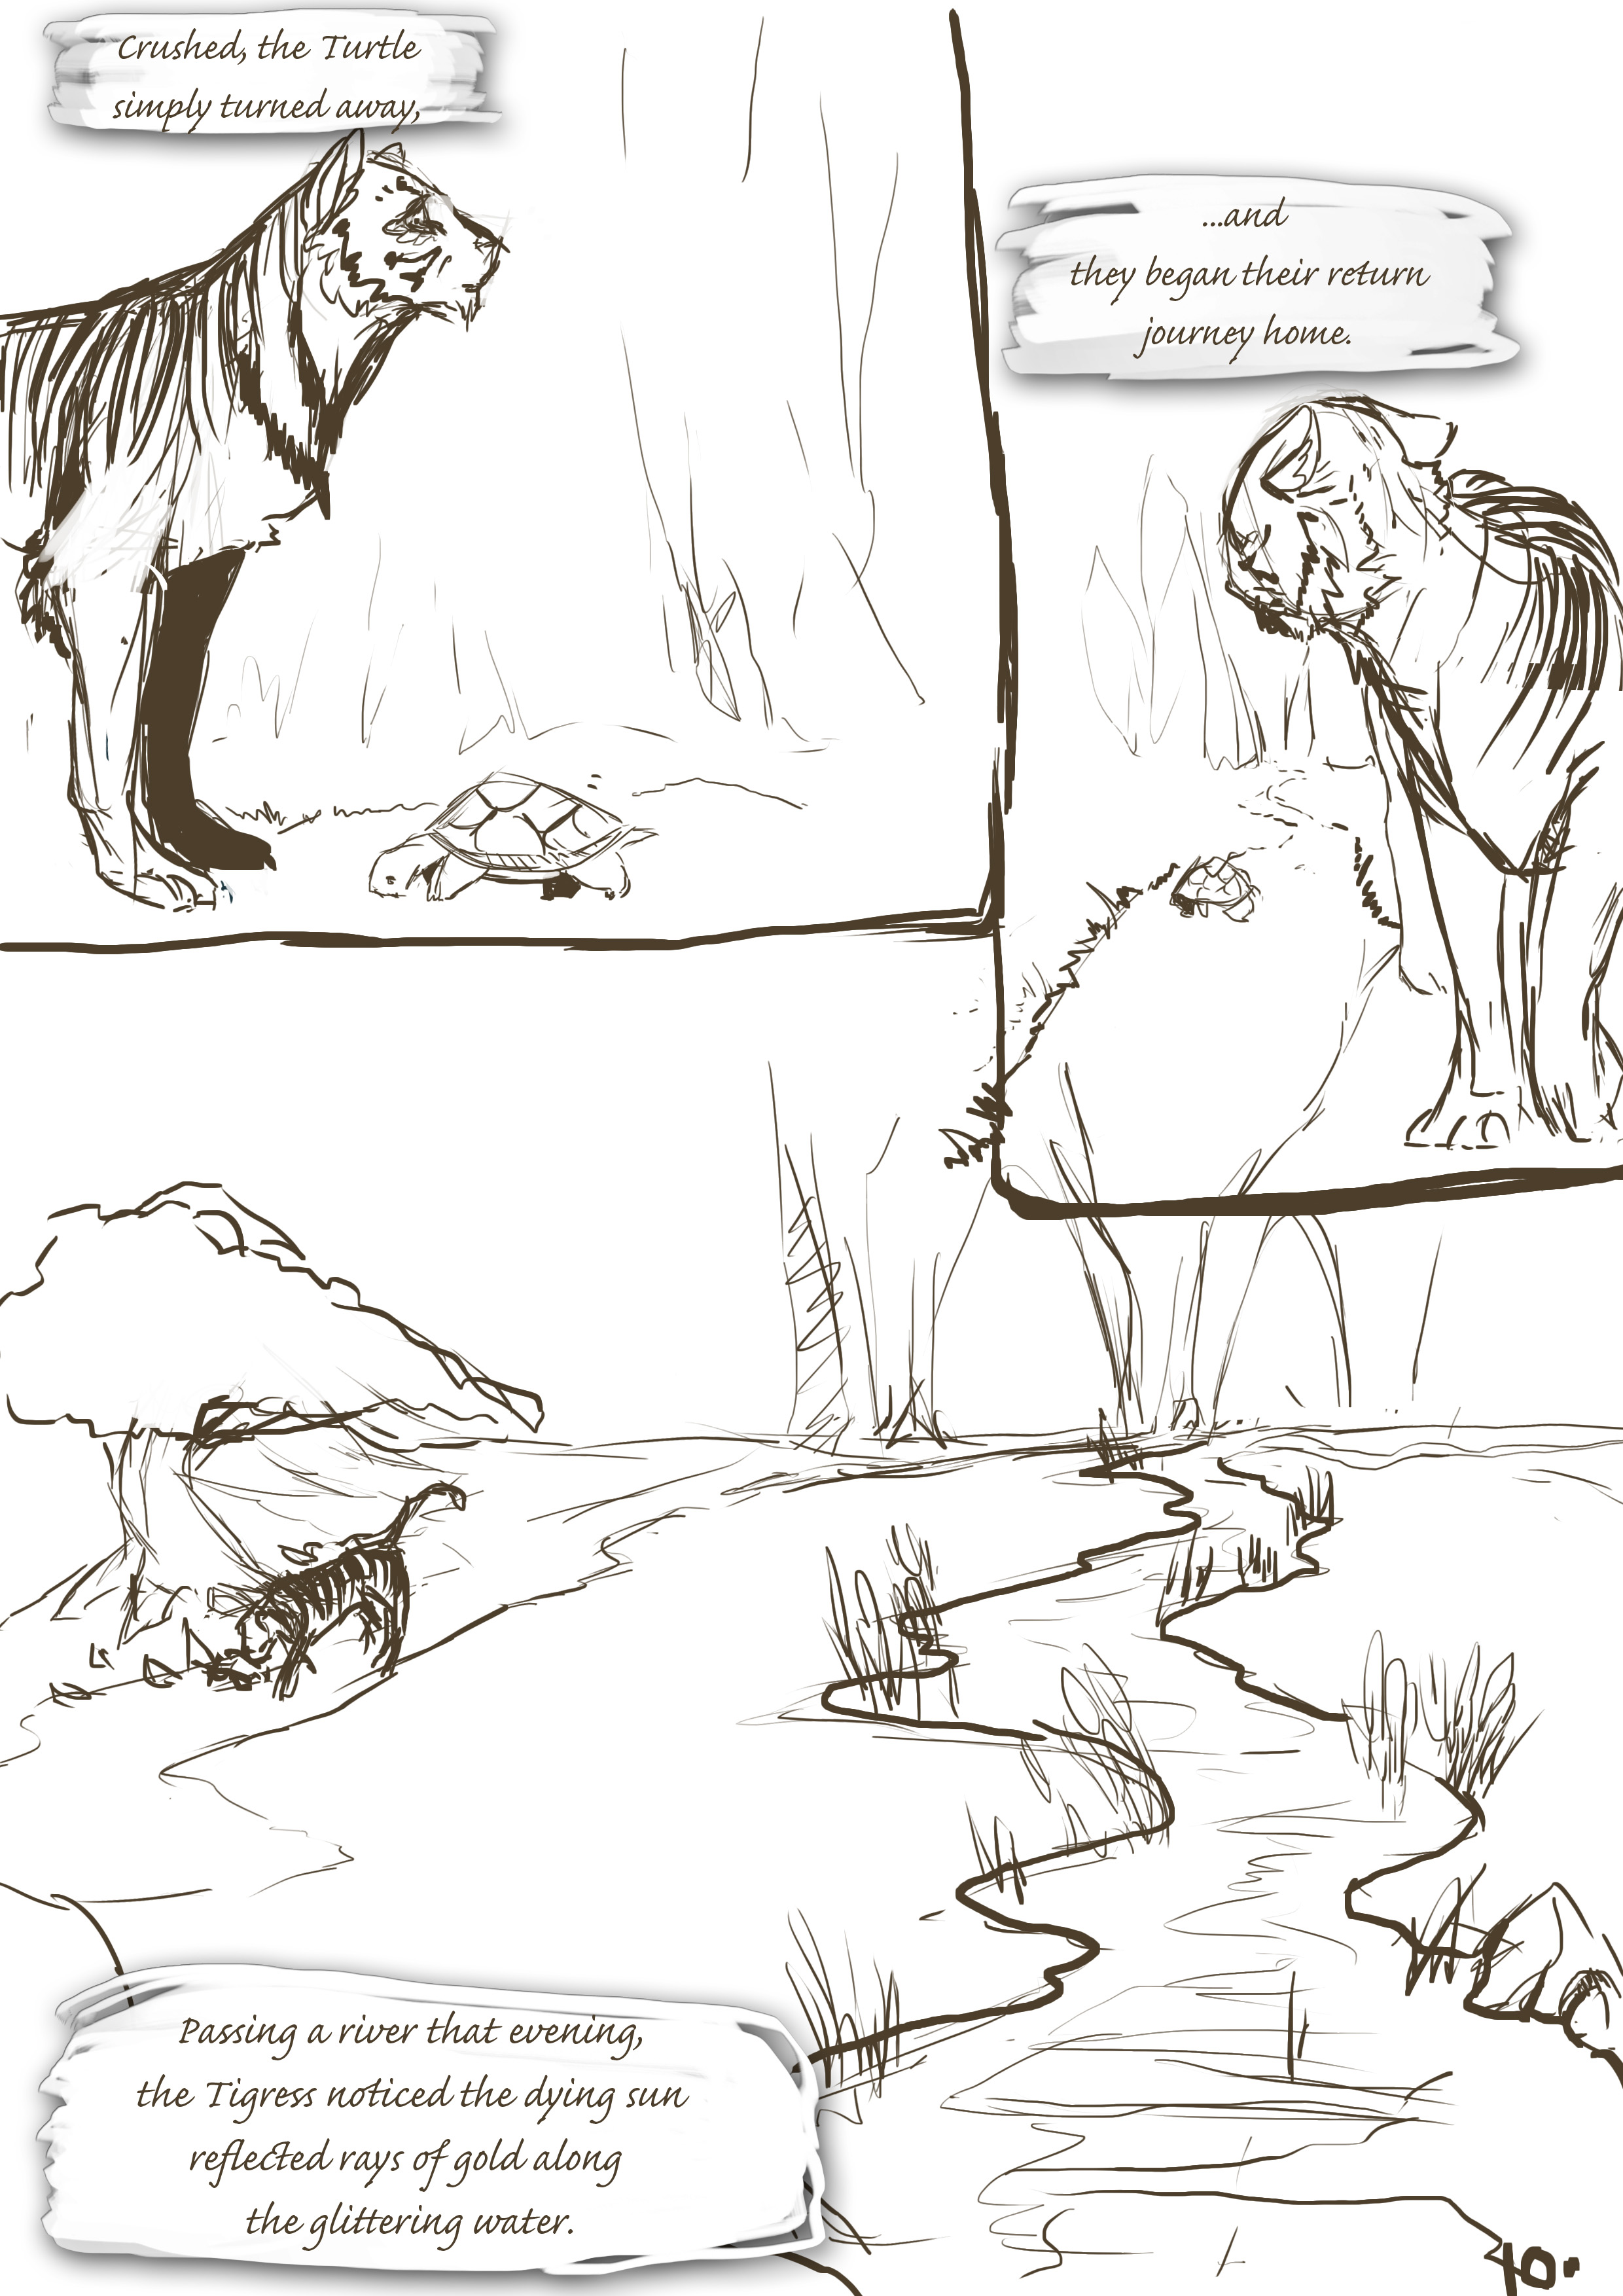 The Turtle and The Tigress 10